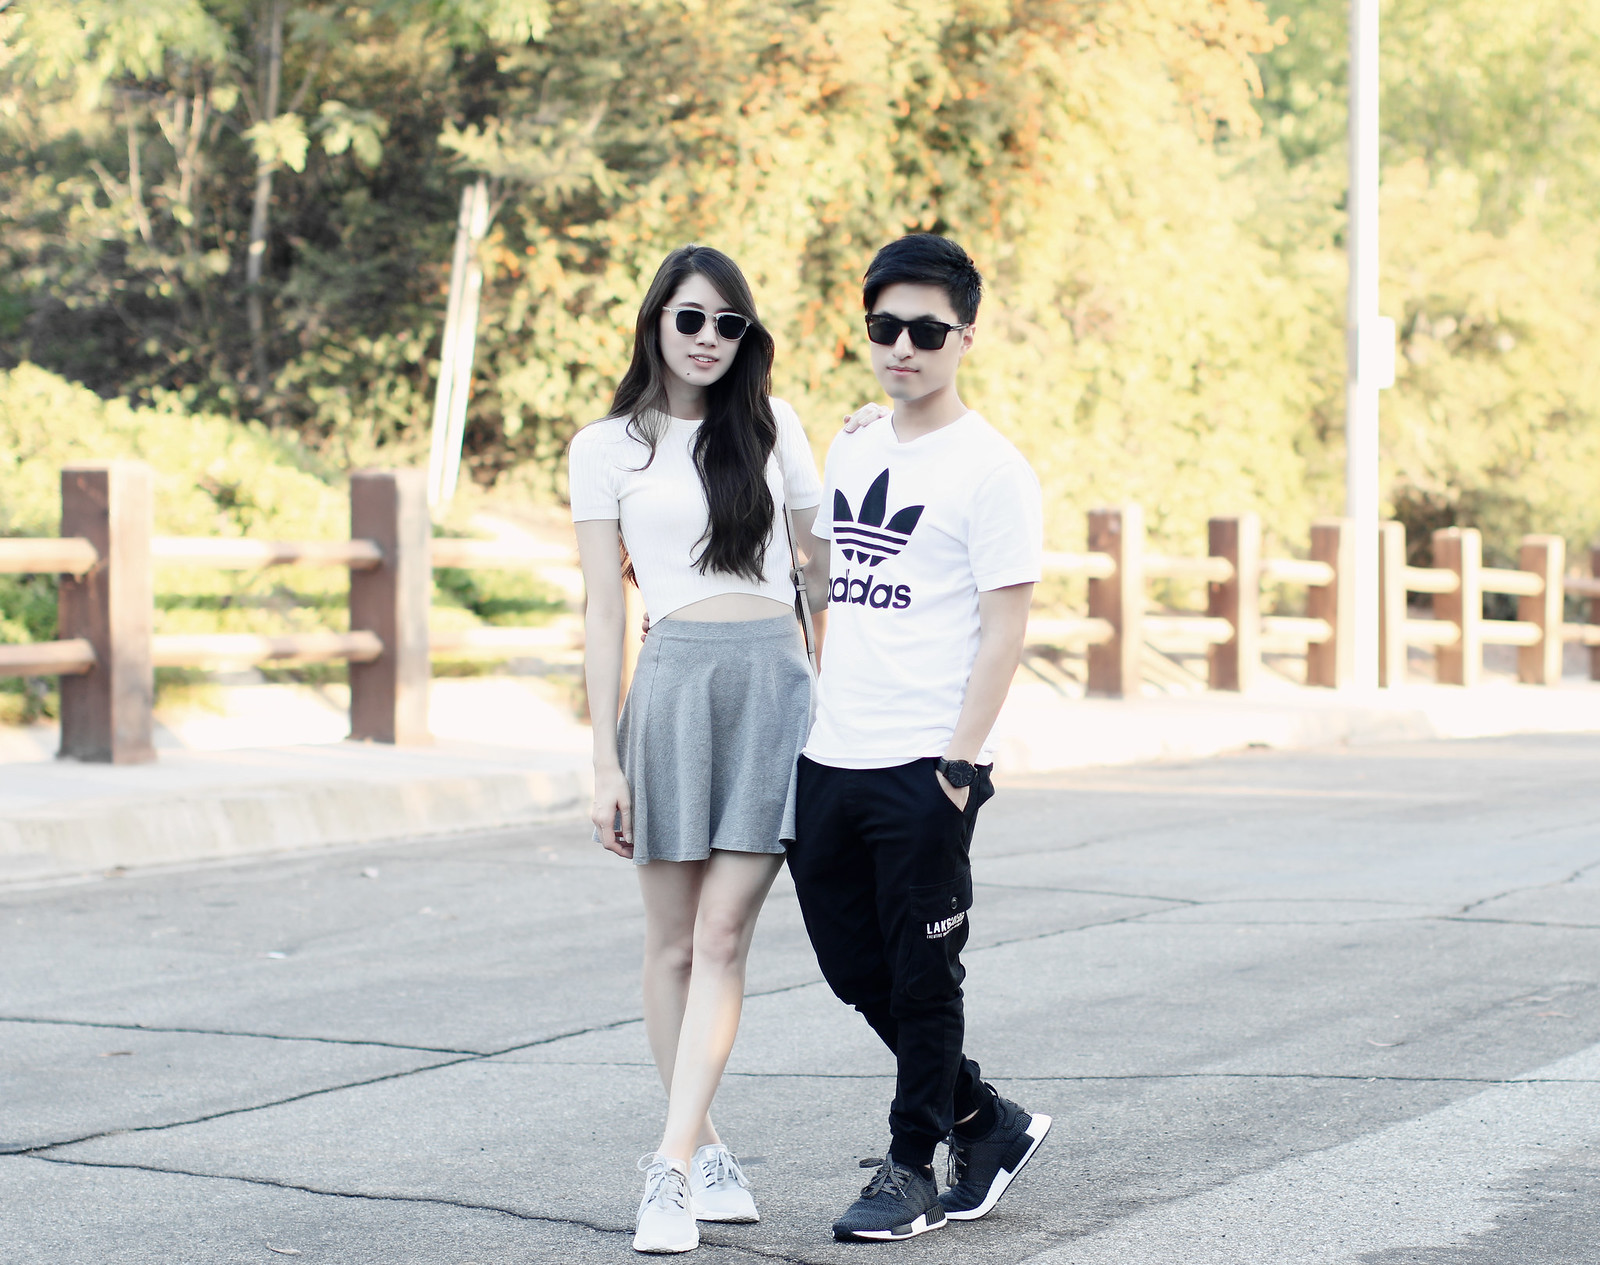 elizabeeetht-khsu0504-instagram-couple-asian-clothestoyouuu